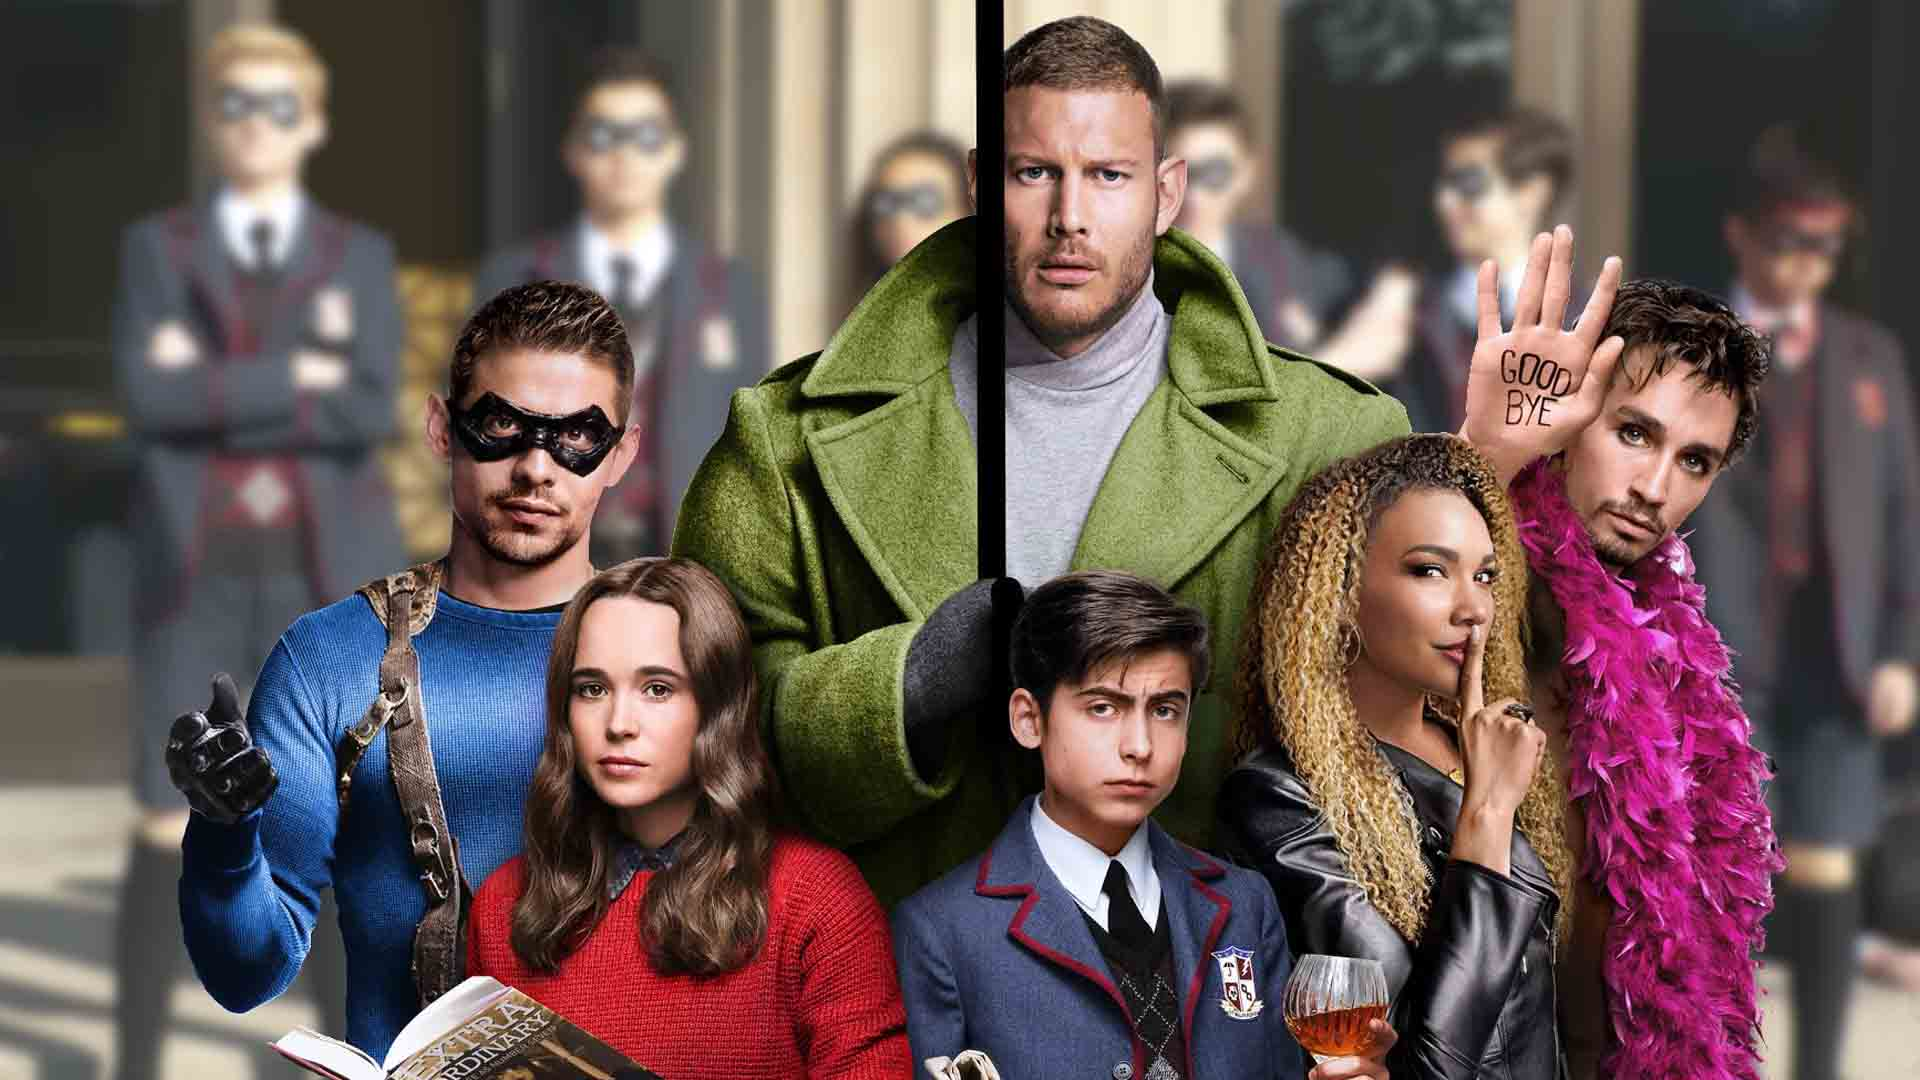 The Umbrella Academy non è la solita storia di supereroi